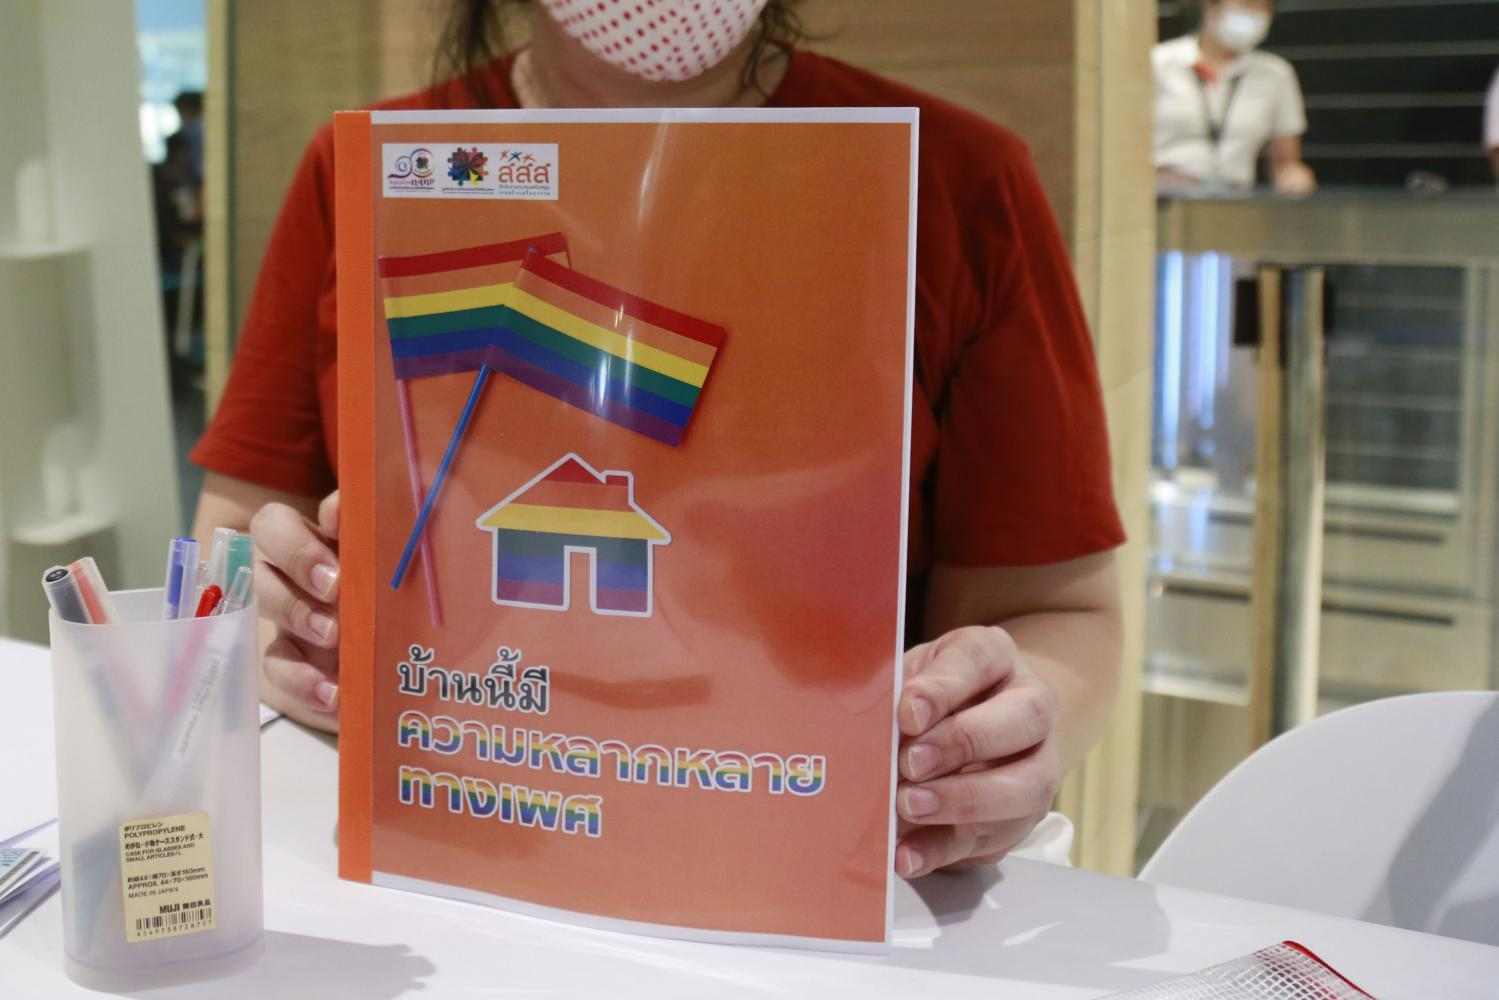 A woman holds up a guidebook designed to help parents of LGBT children overcome challenges and prejudices.Arnun Chonmahatrakool